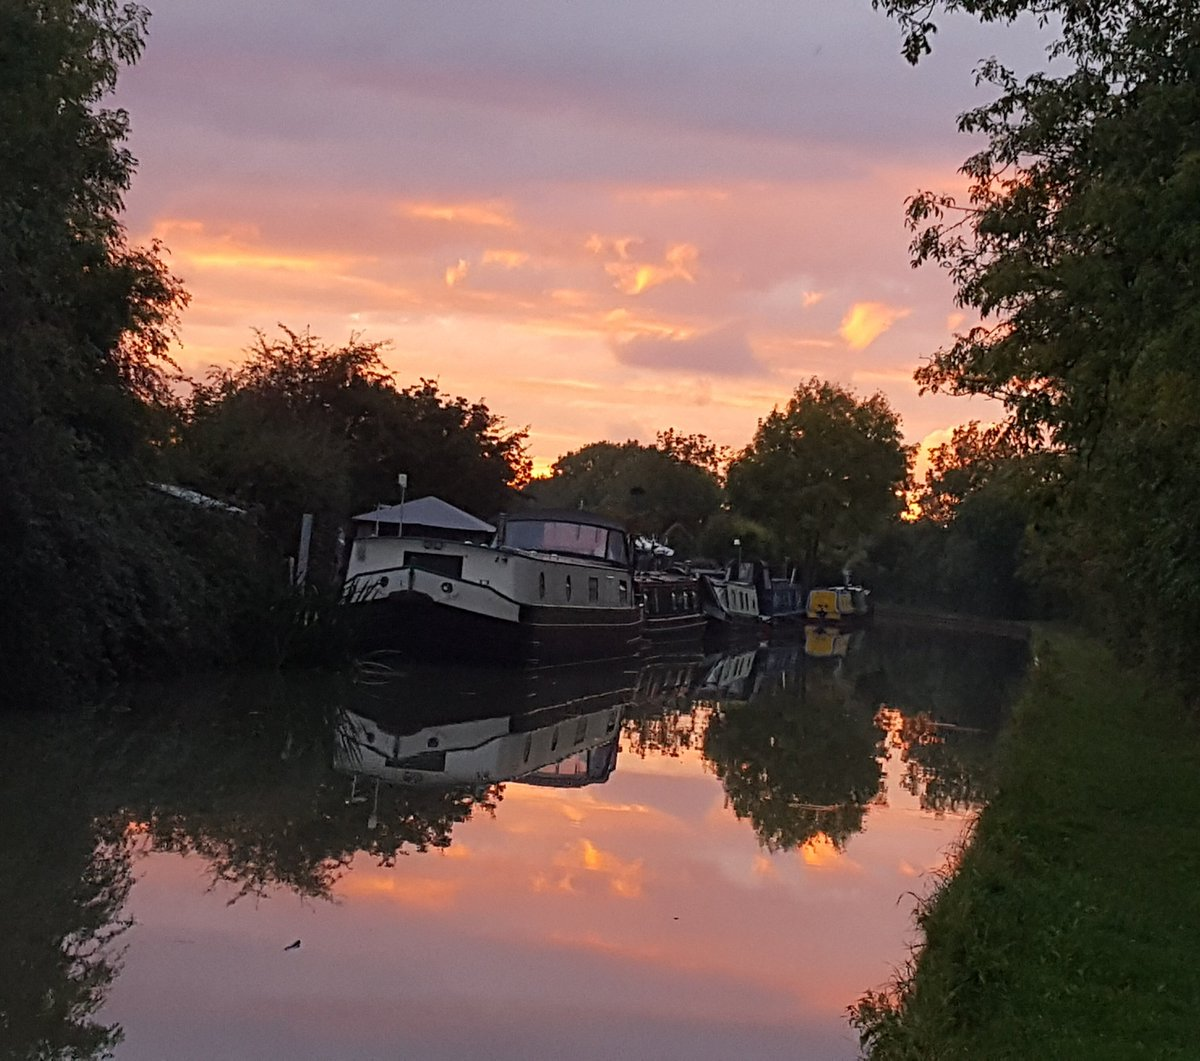 Thank you so much for all your recent Rts &amp; likes, much appreciated   Tonight&#39;s #Sunset pic #boatsthattweet<br>http://pic.twitter.com/MU255CX72j